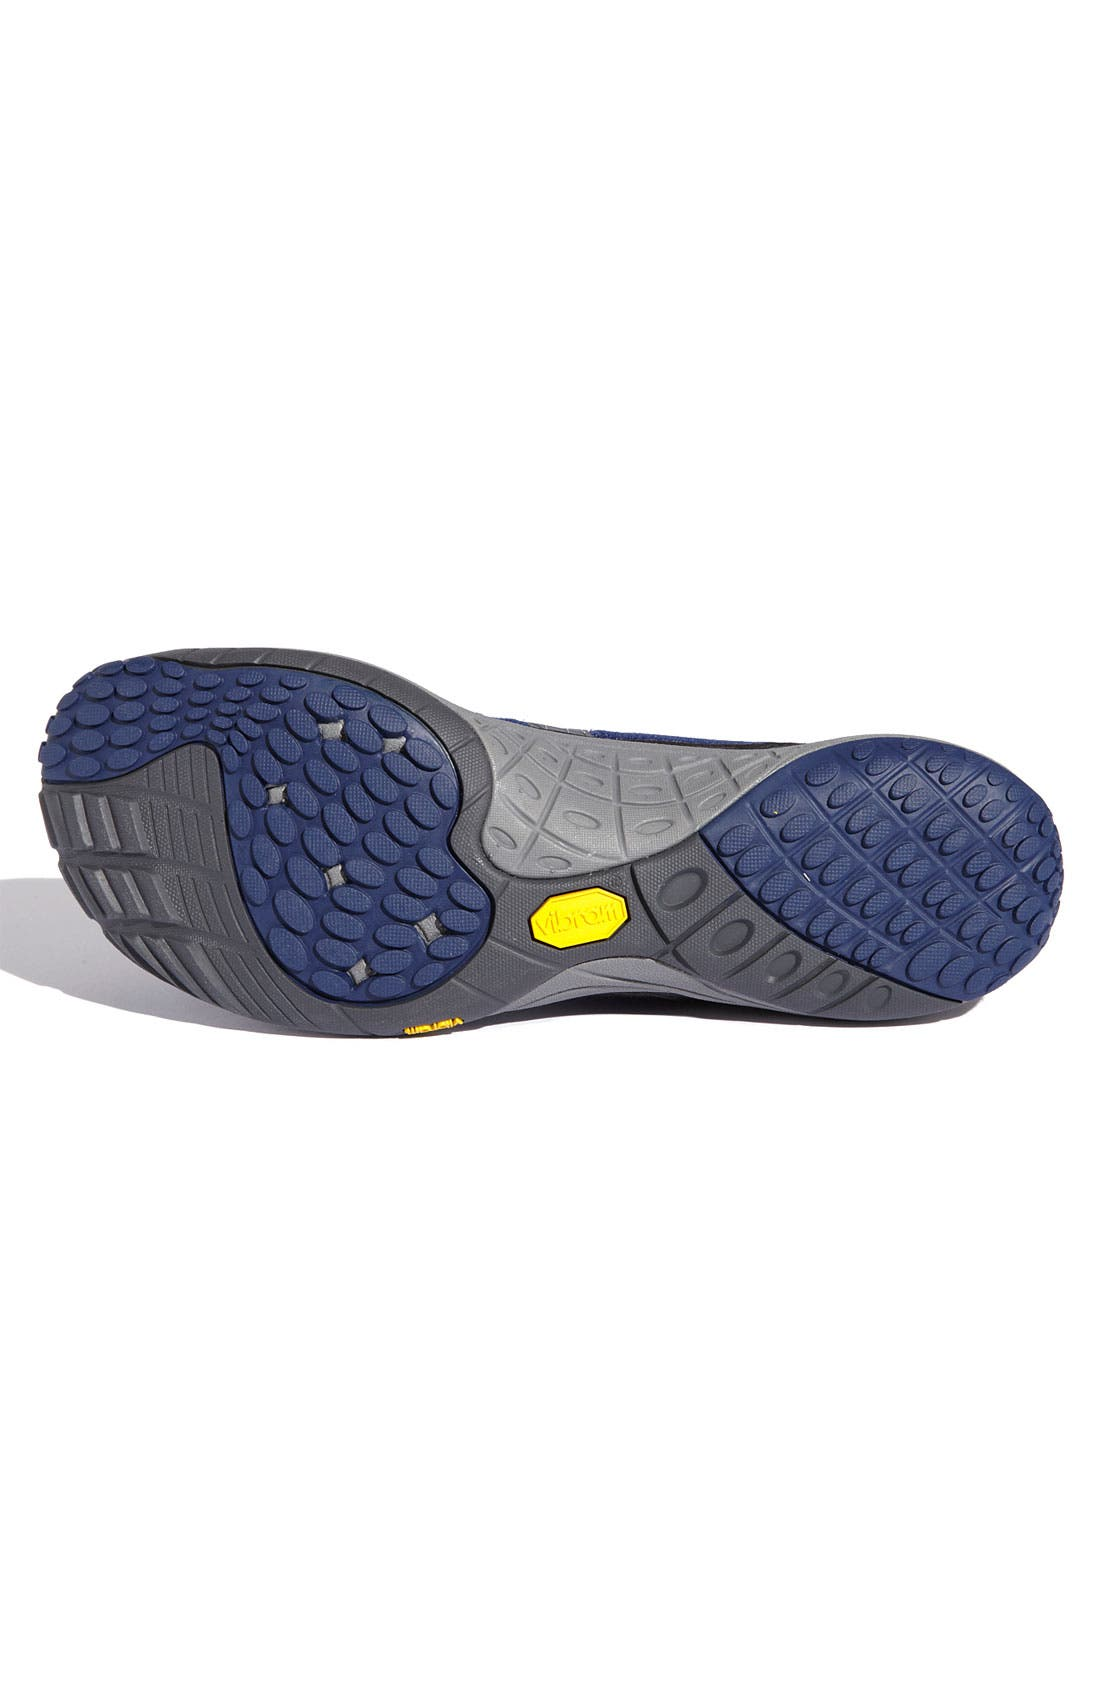 Alternate Image 4  - Merrell 'Road Glove' Running Shoe (Men)